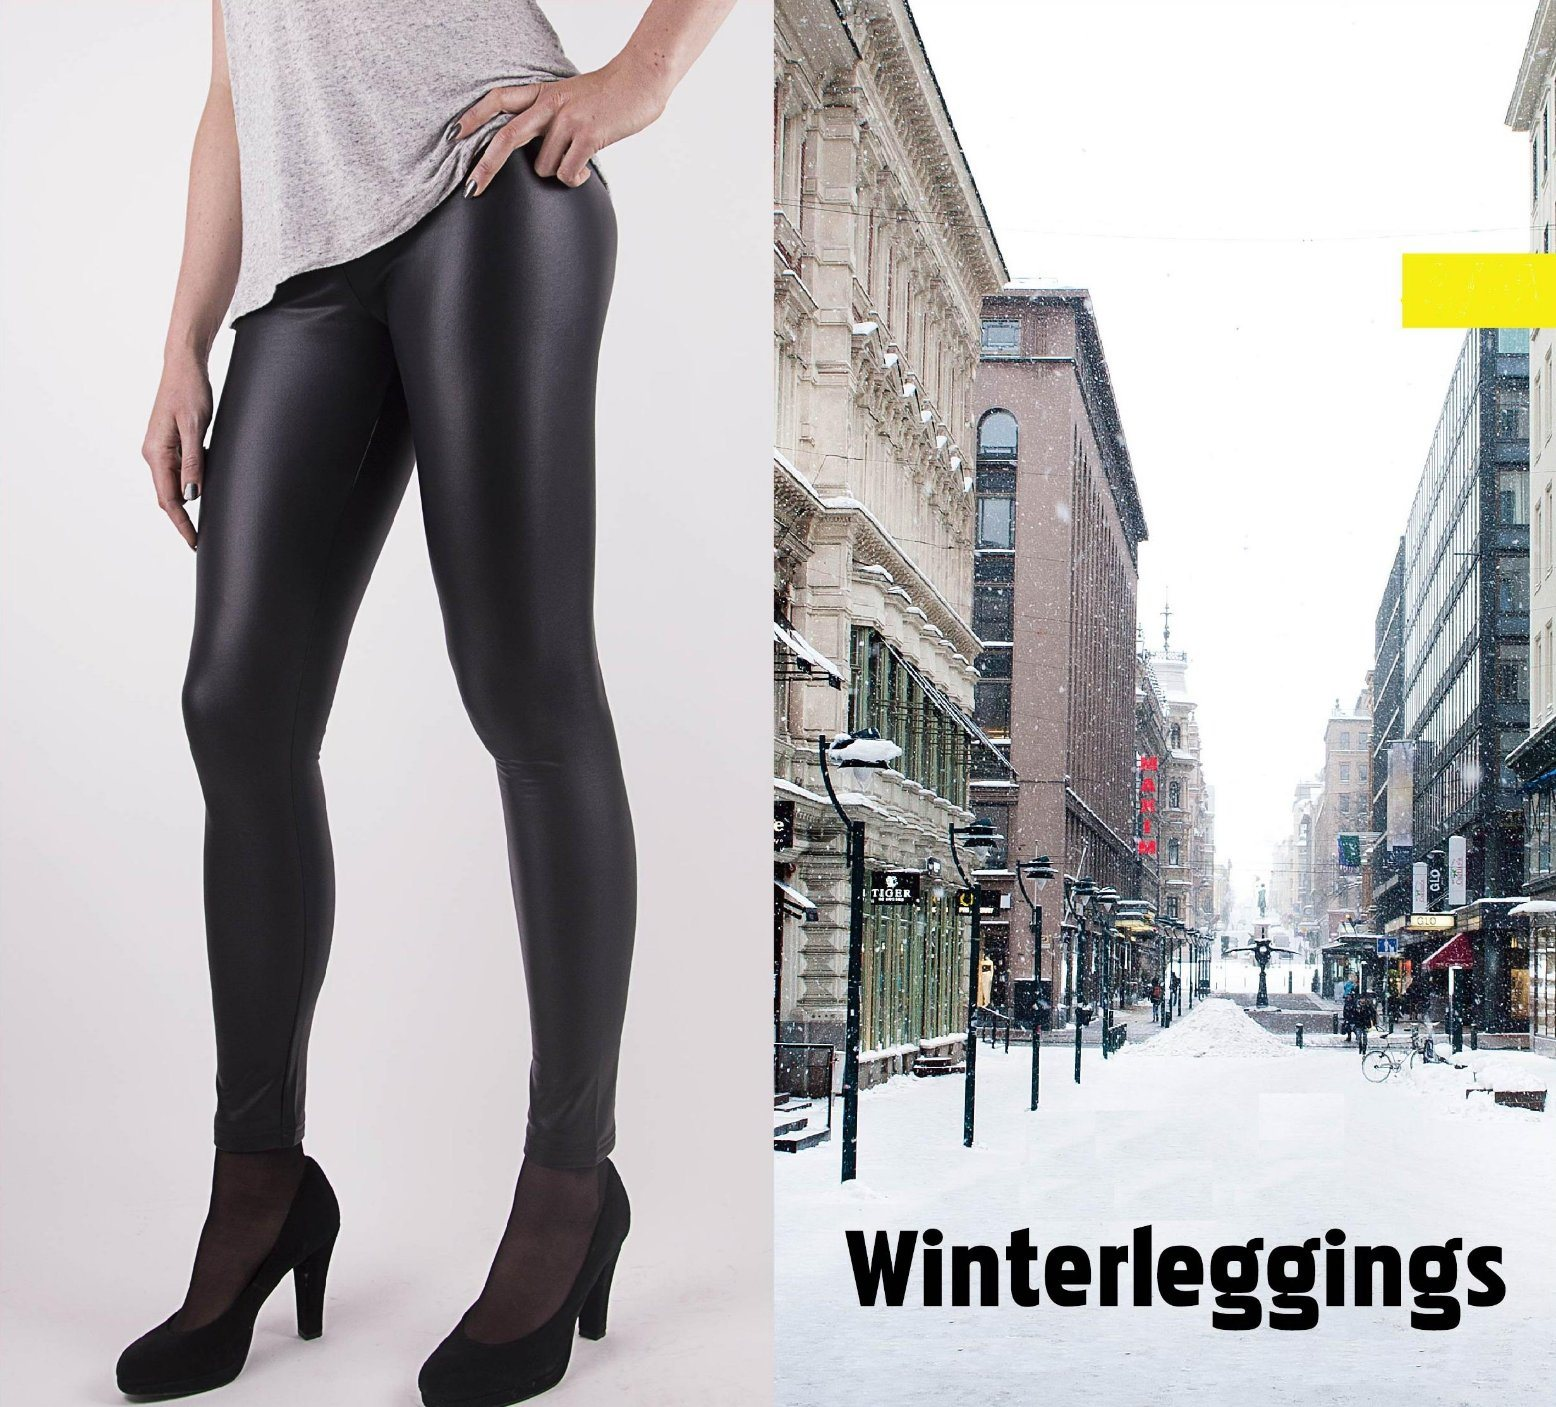 2017 Women′s Fitted PU Warmwinter Leggings with Leather Look